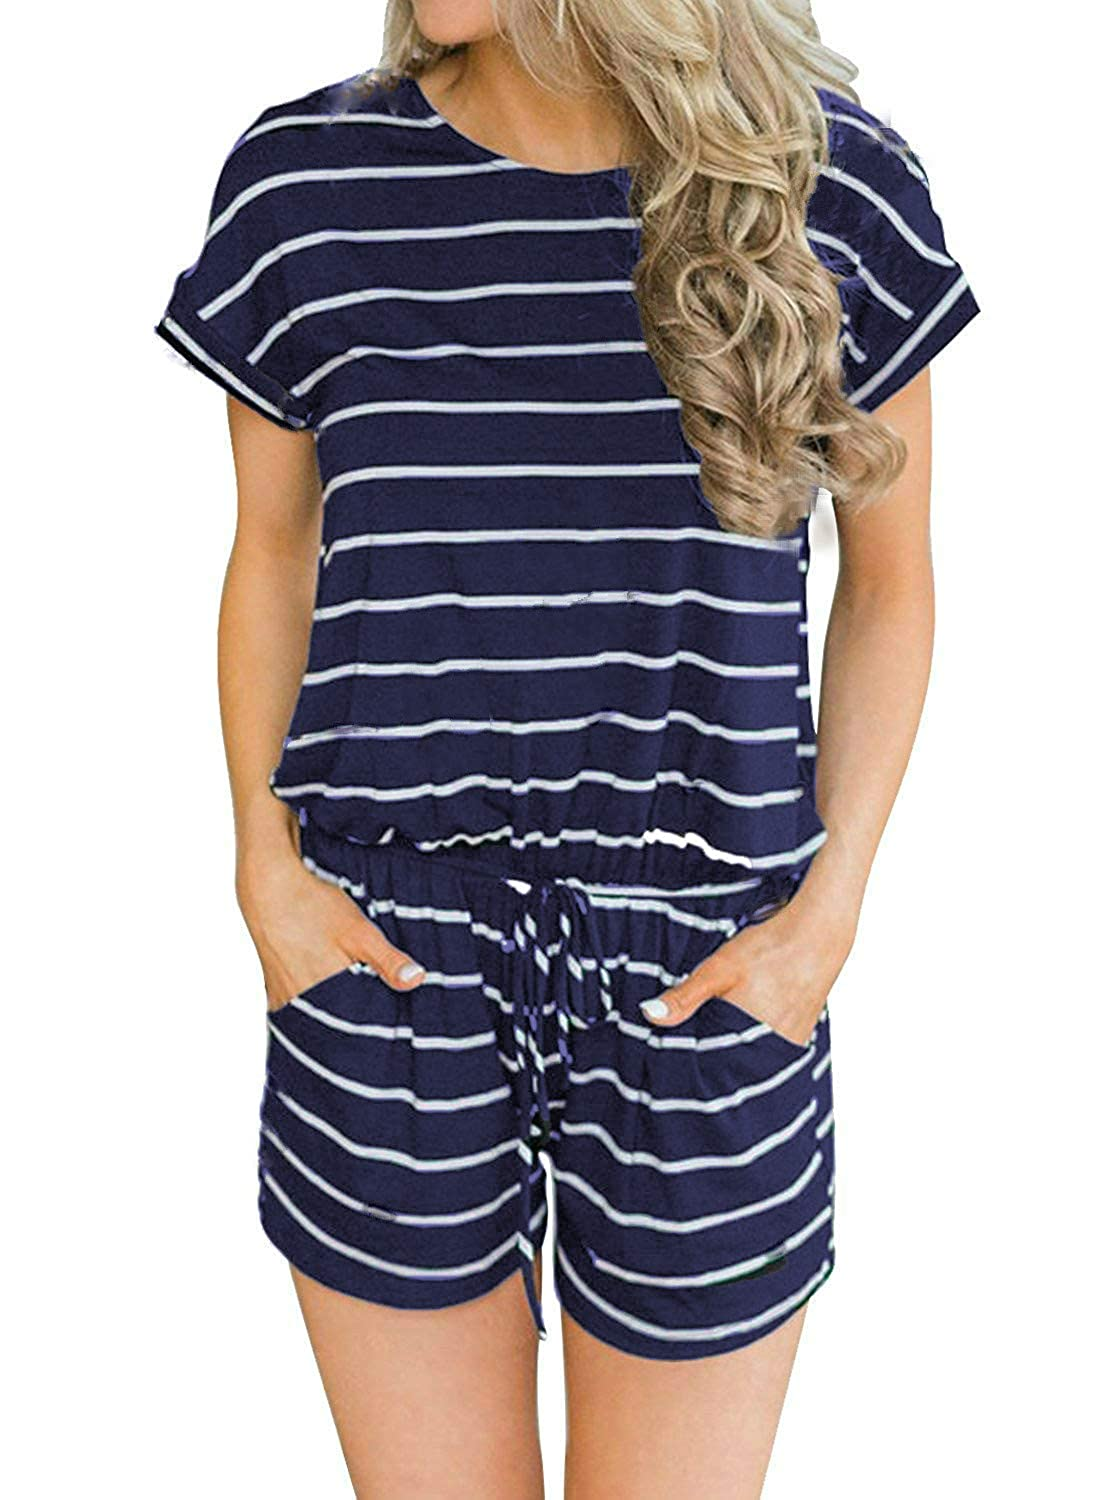 01navy Striped Artfish Women's Summer Striped Jumpsuit Casual Loose Short Sleeve Jumpsuit Rompers